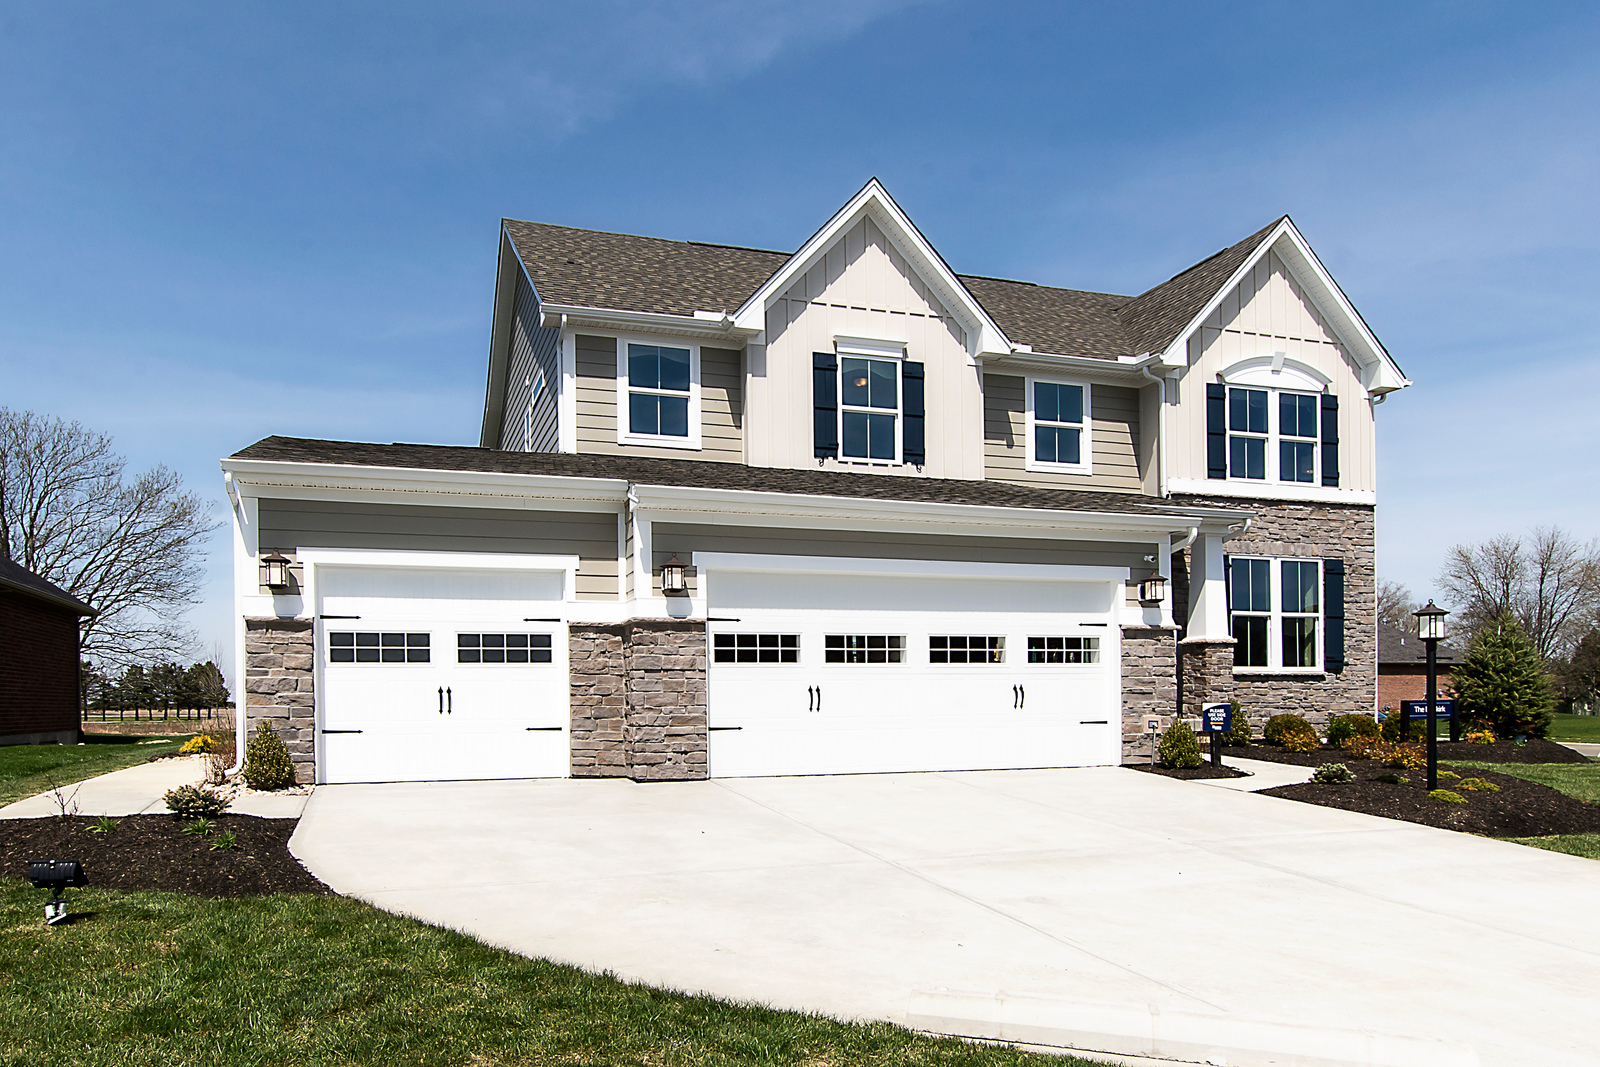 The Dunkirk Model At Stonebridge Meadows Featuring A 3 Car Garage Finally